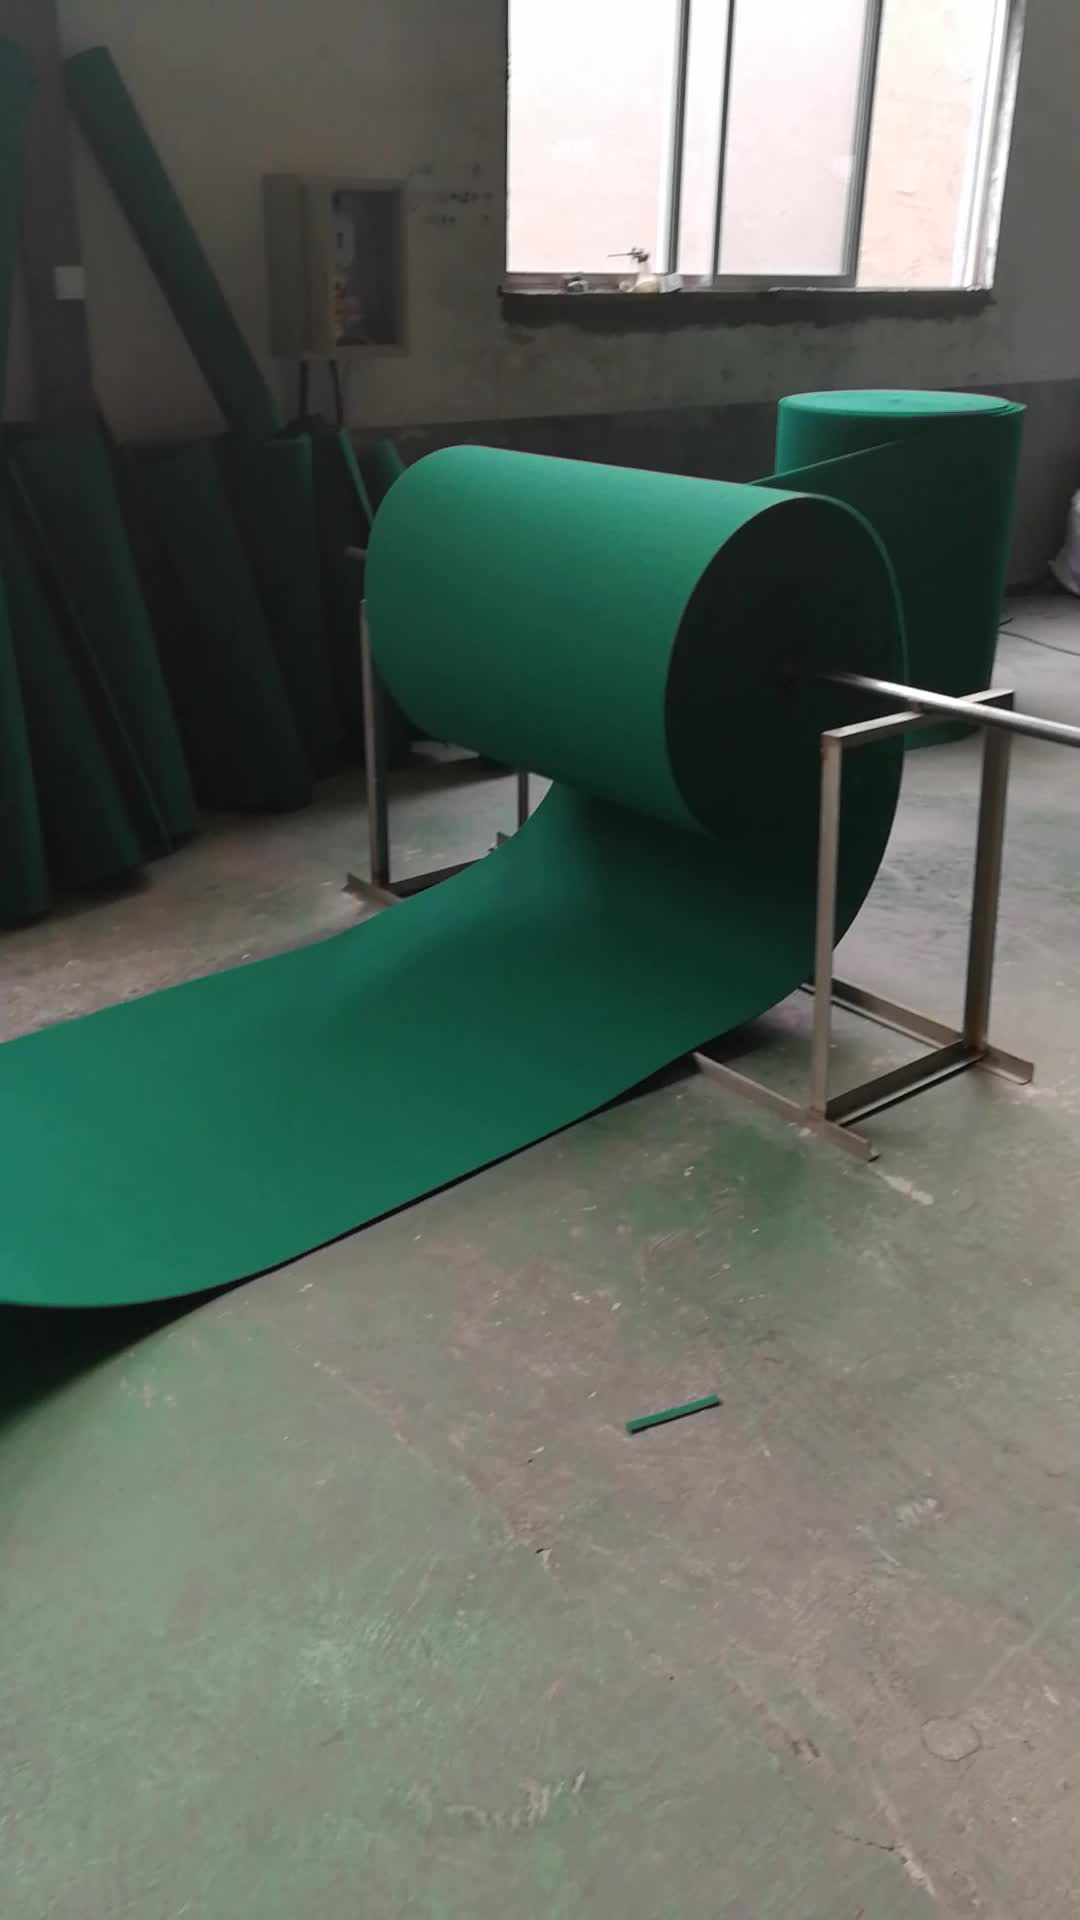 factory supplies a large number of sponge scourer cloth in rolls